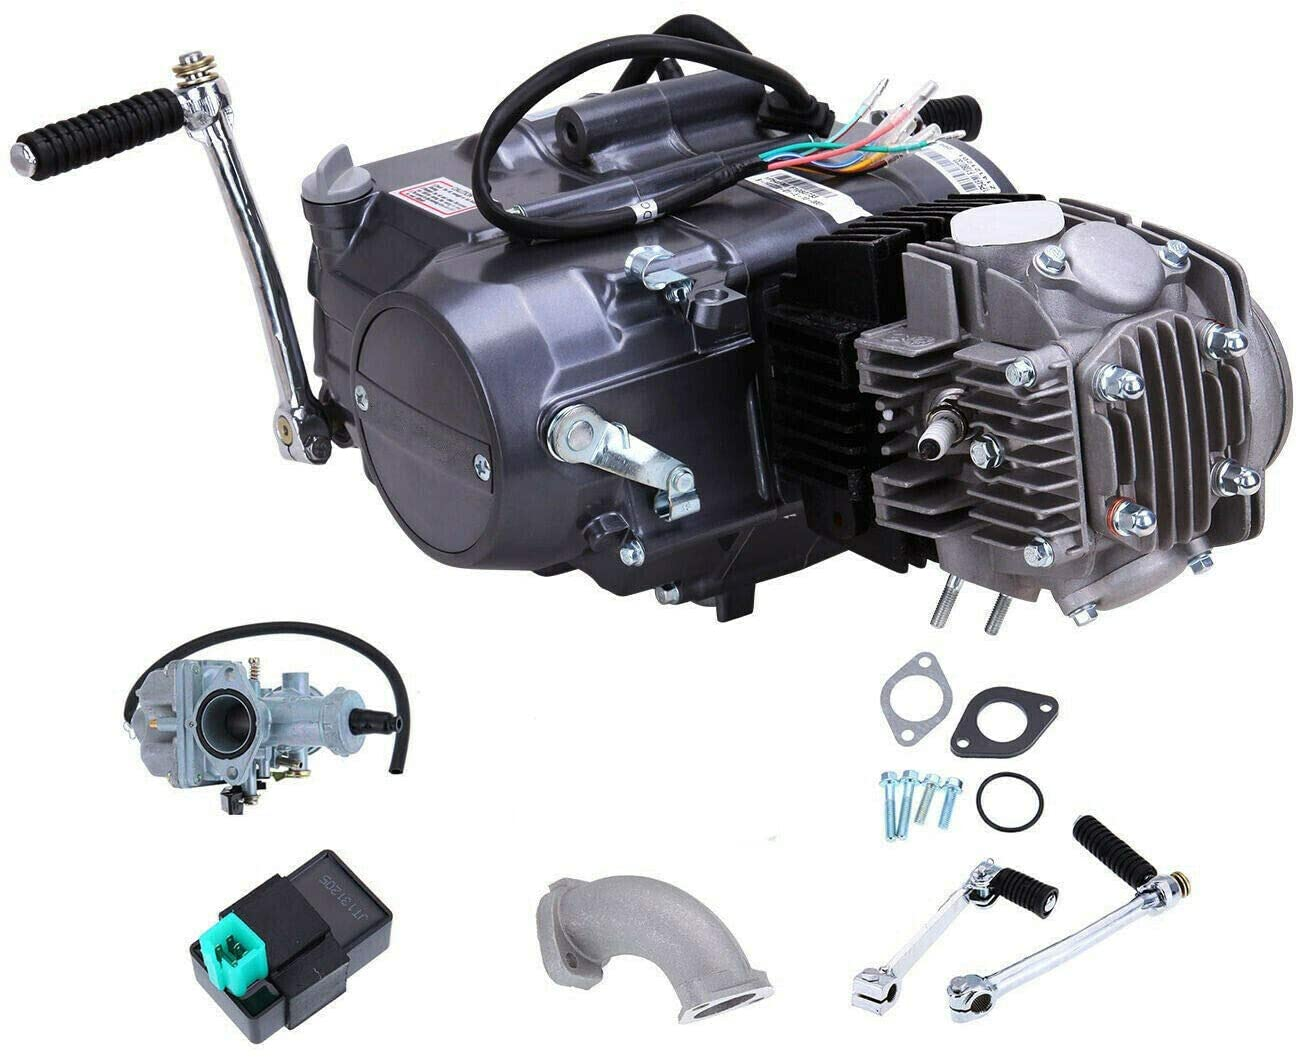 125CC 4 Stroke Engine Motor Manual Clutch Pit Dirt Bike ATV Quad CDI Motor Engine Complete Kit Fits for Honda CRF50 CRF70 XR50 XR70 Z50 Z50R